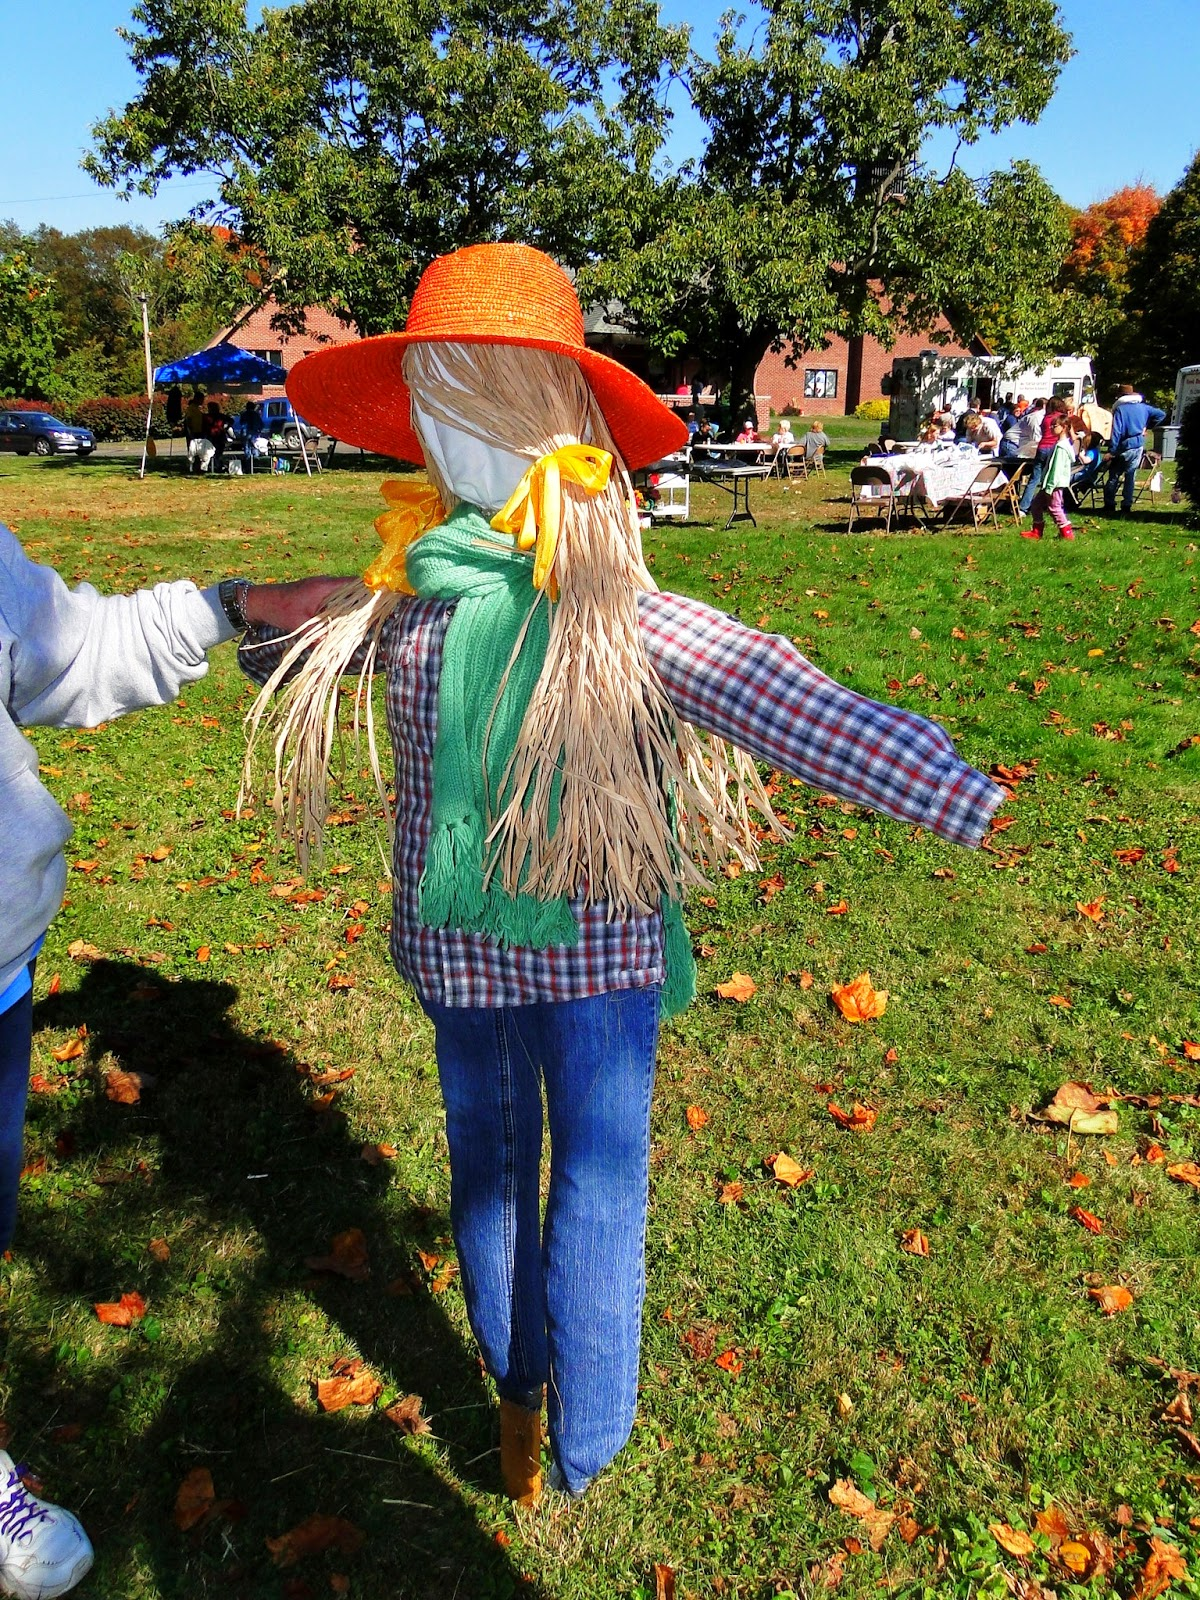 New England Fall Events - Scarecrow Festival Wallingford CT